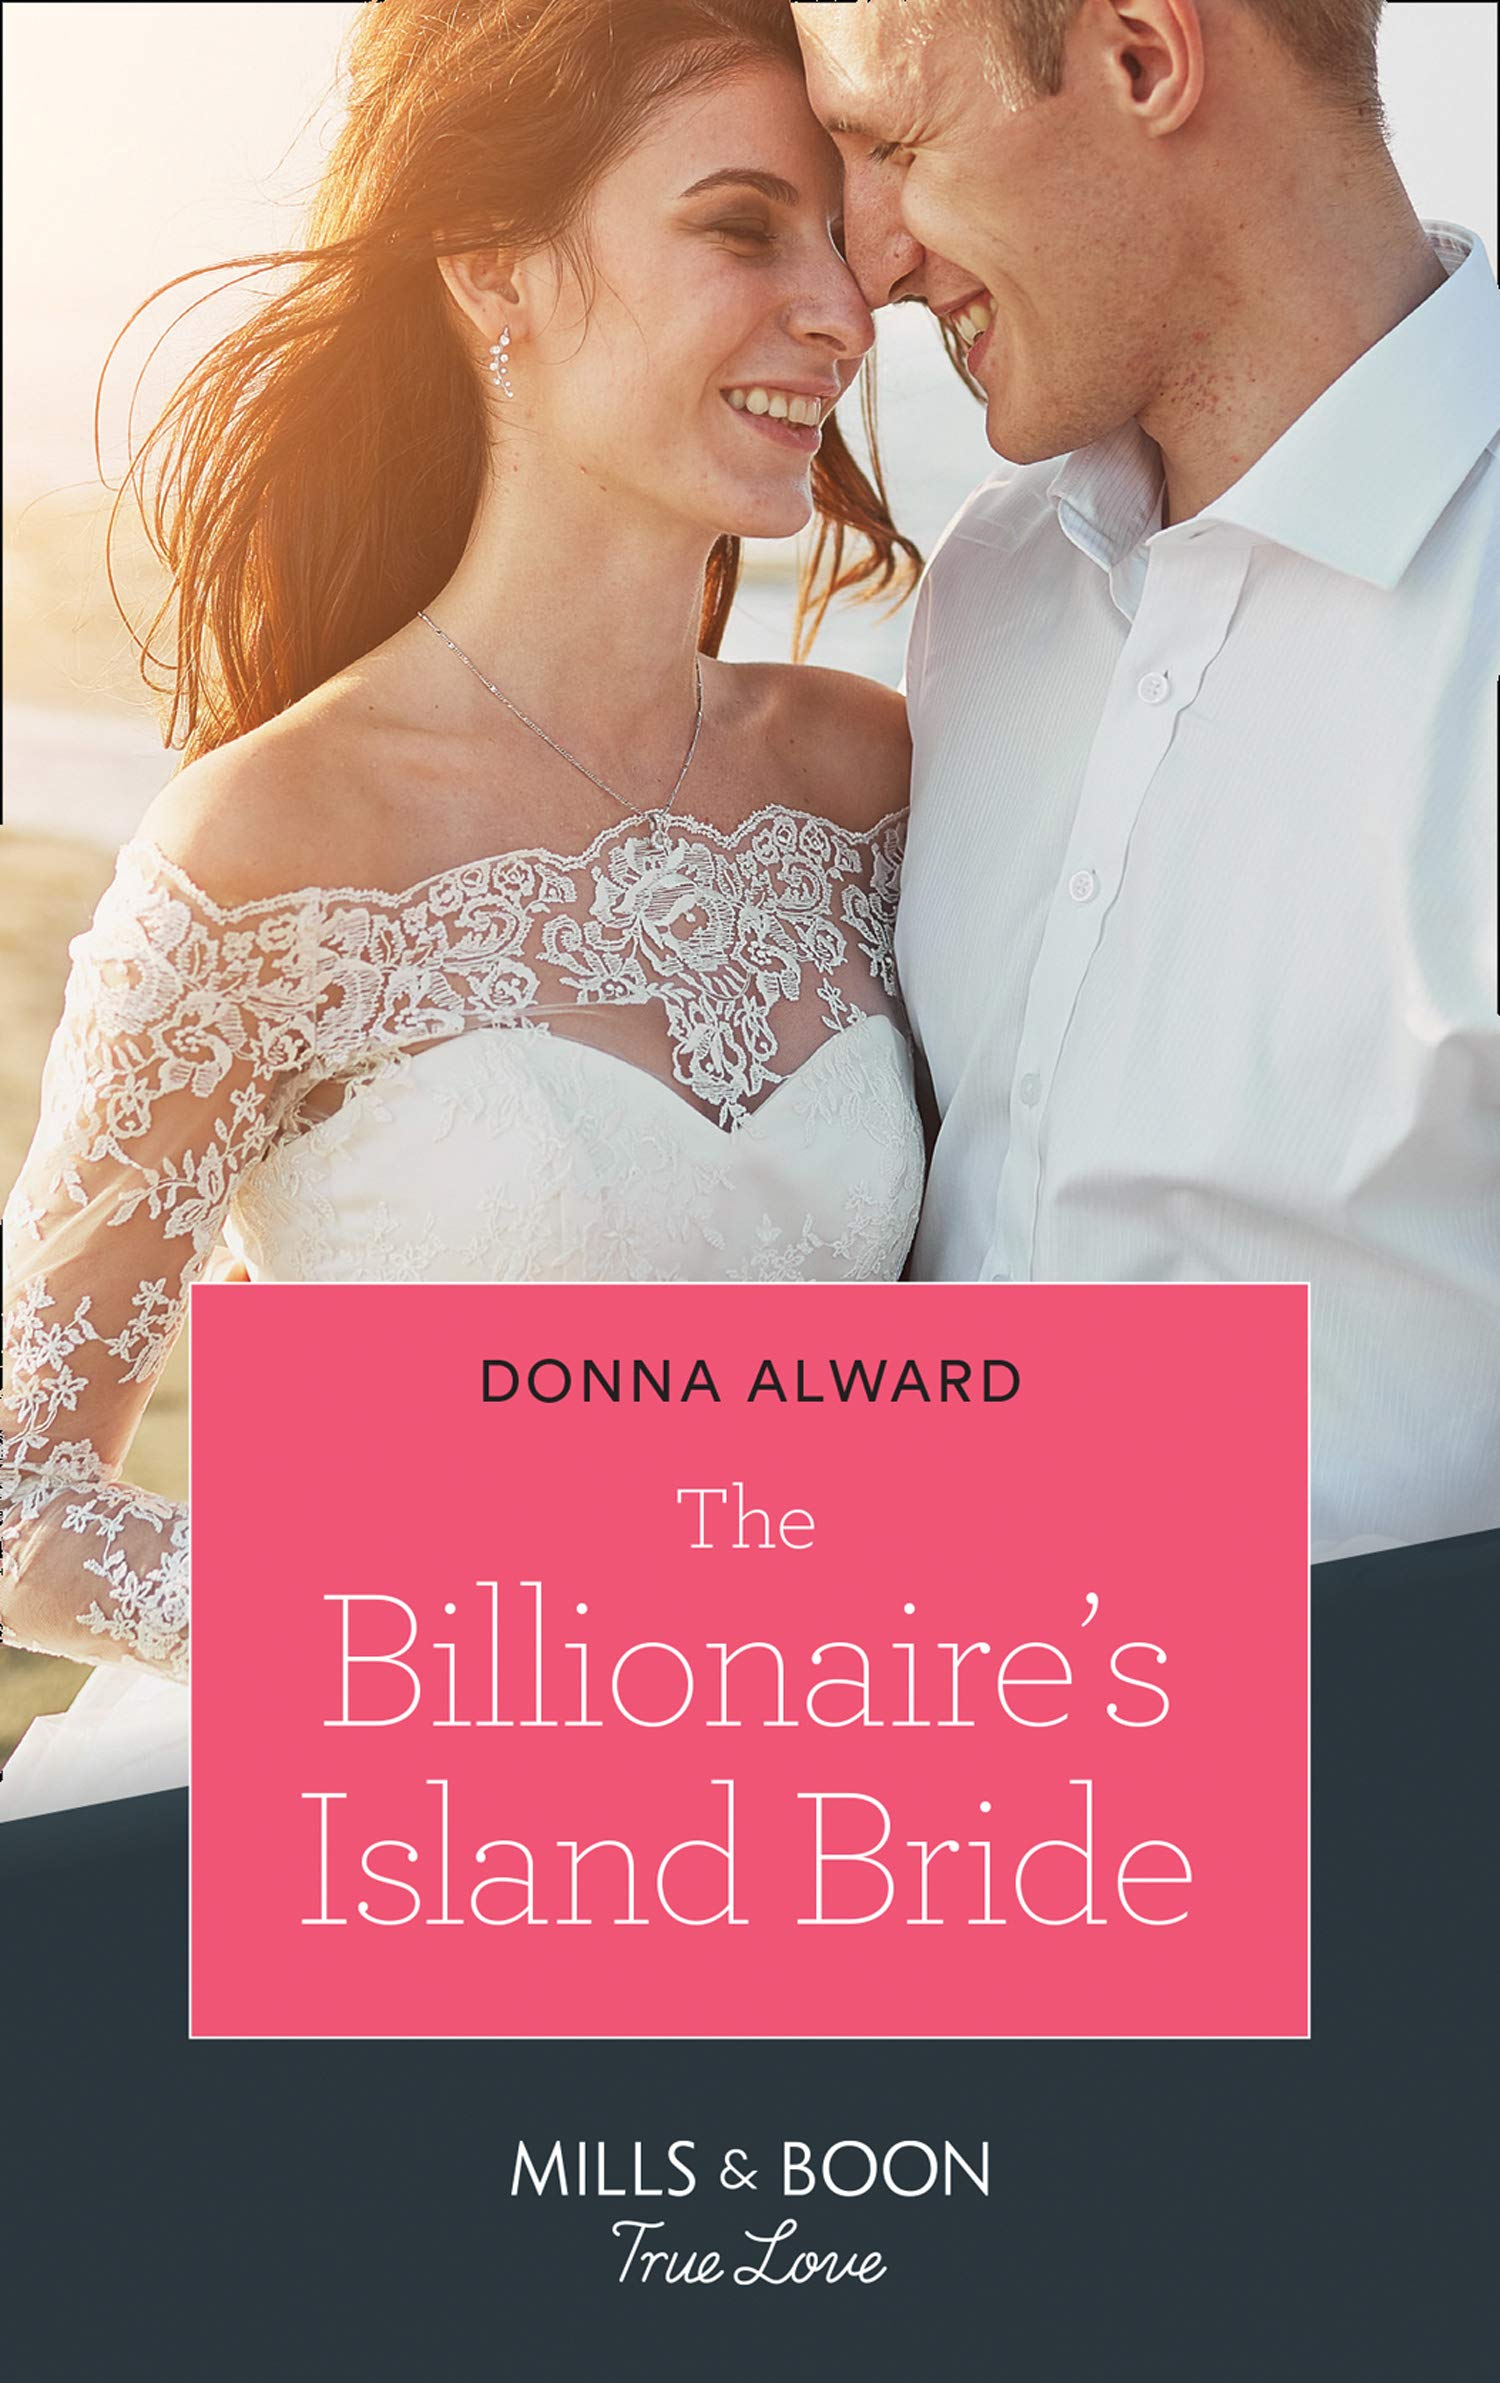 The Billionaire's Island Bride (Mills & Boon True Love) (South Shore Billionaires, Book 3)